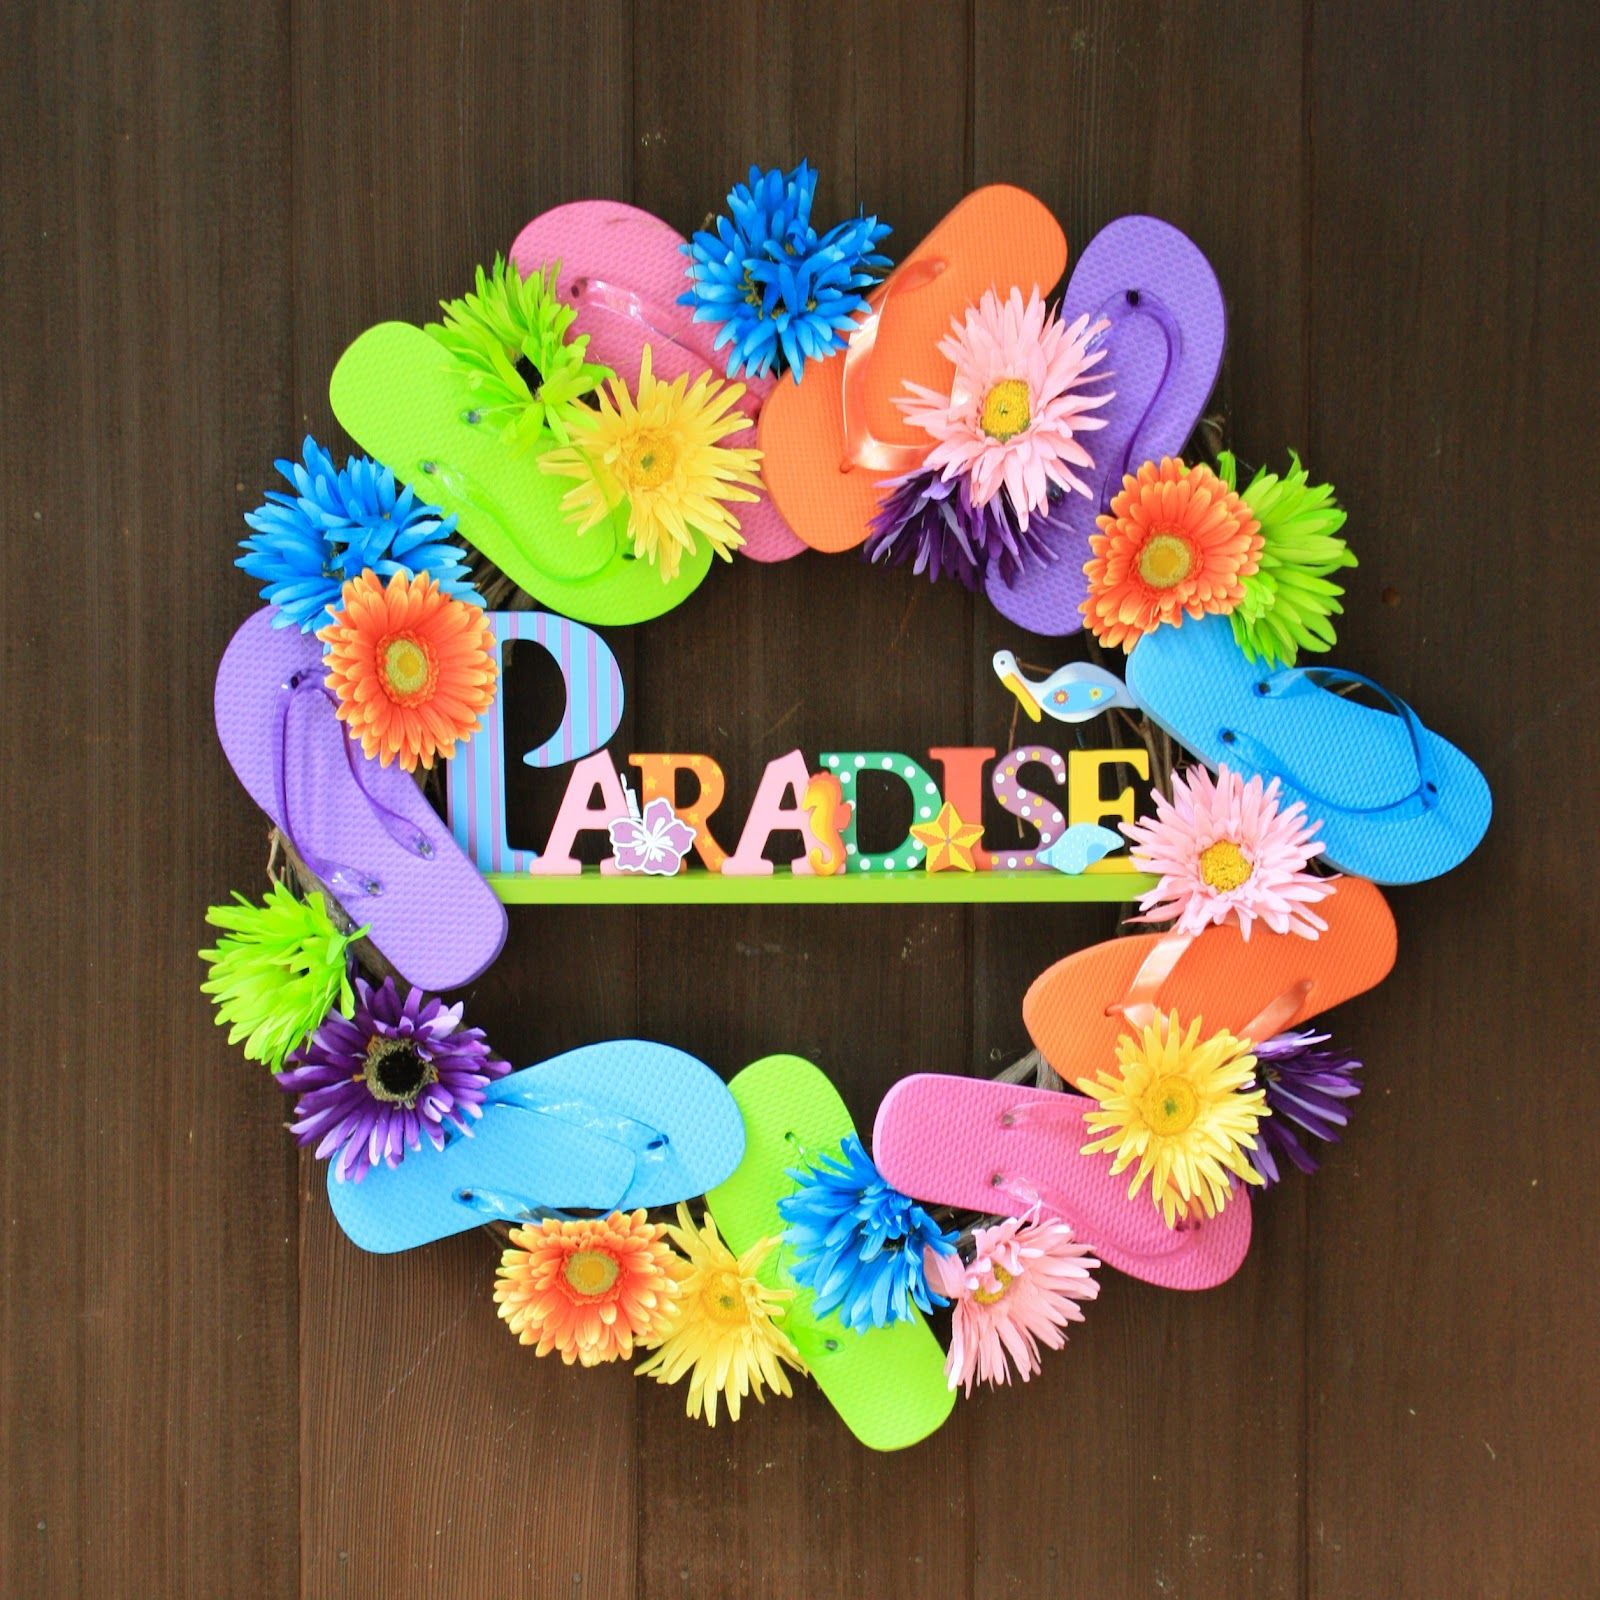 62b5e44c6ada7 how to make a flip flop wreath - Google Search